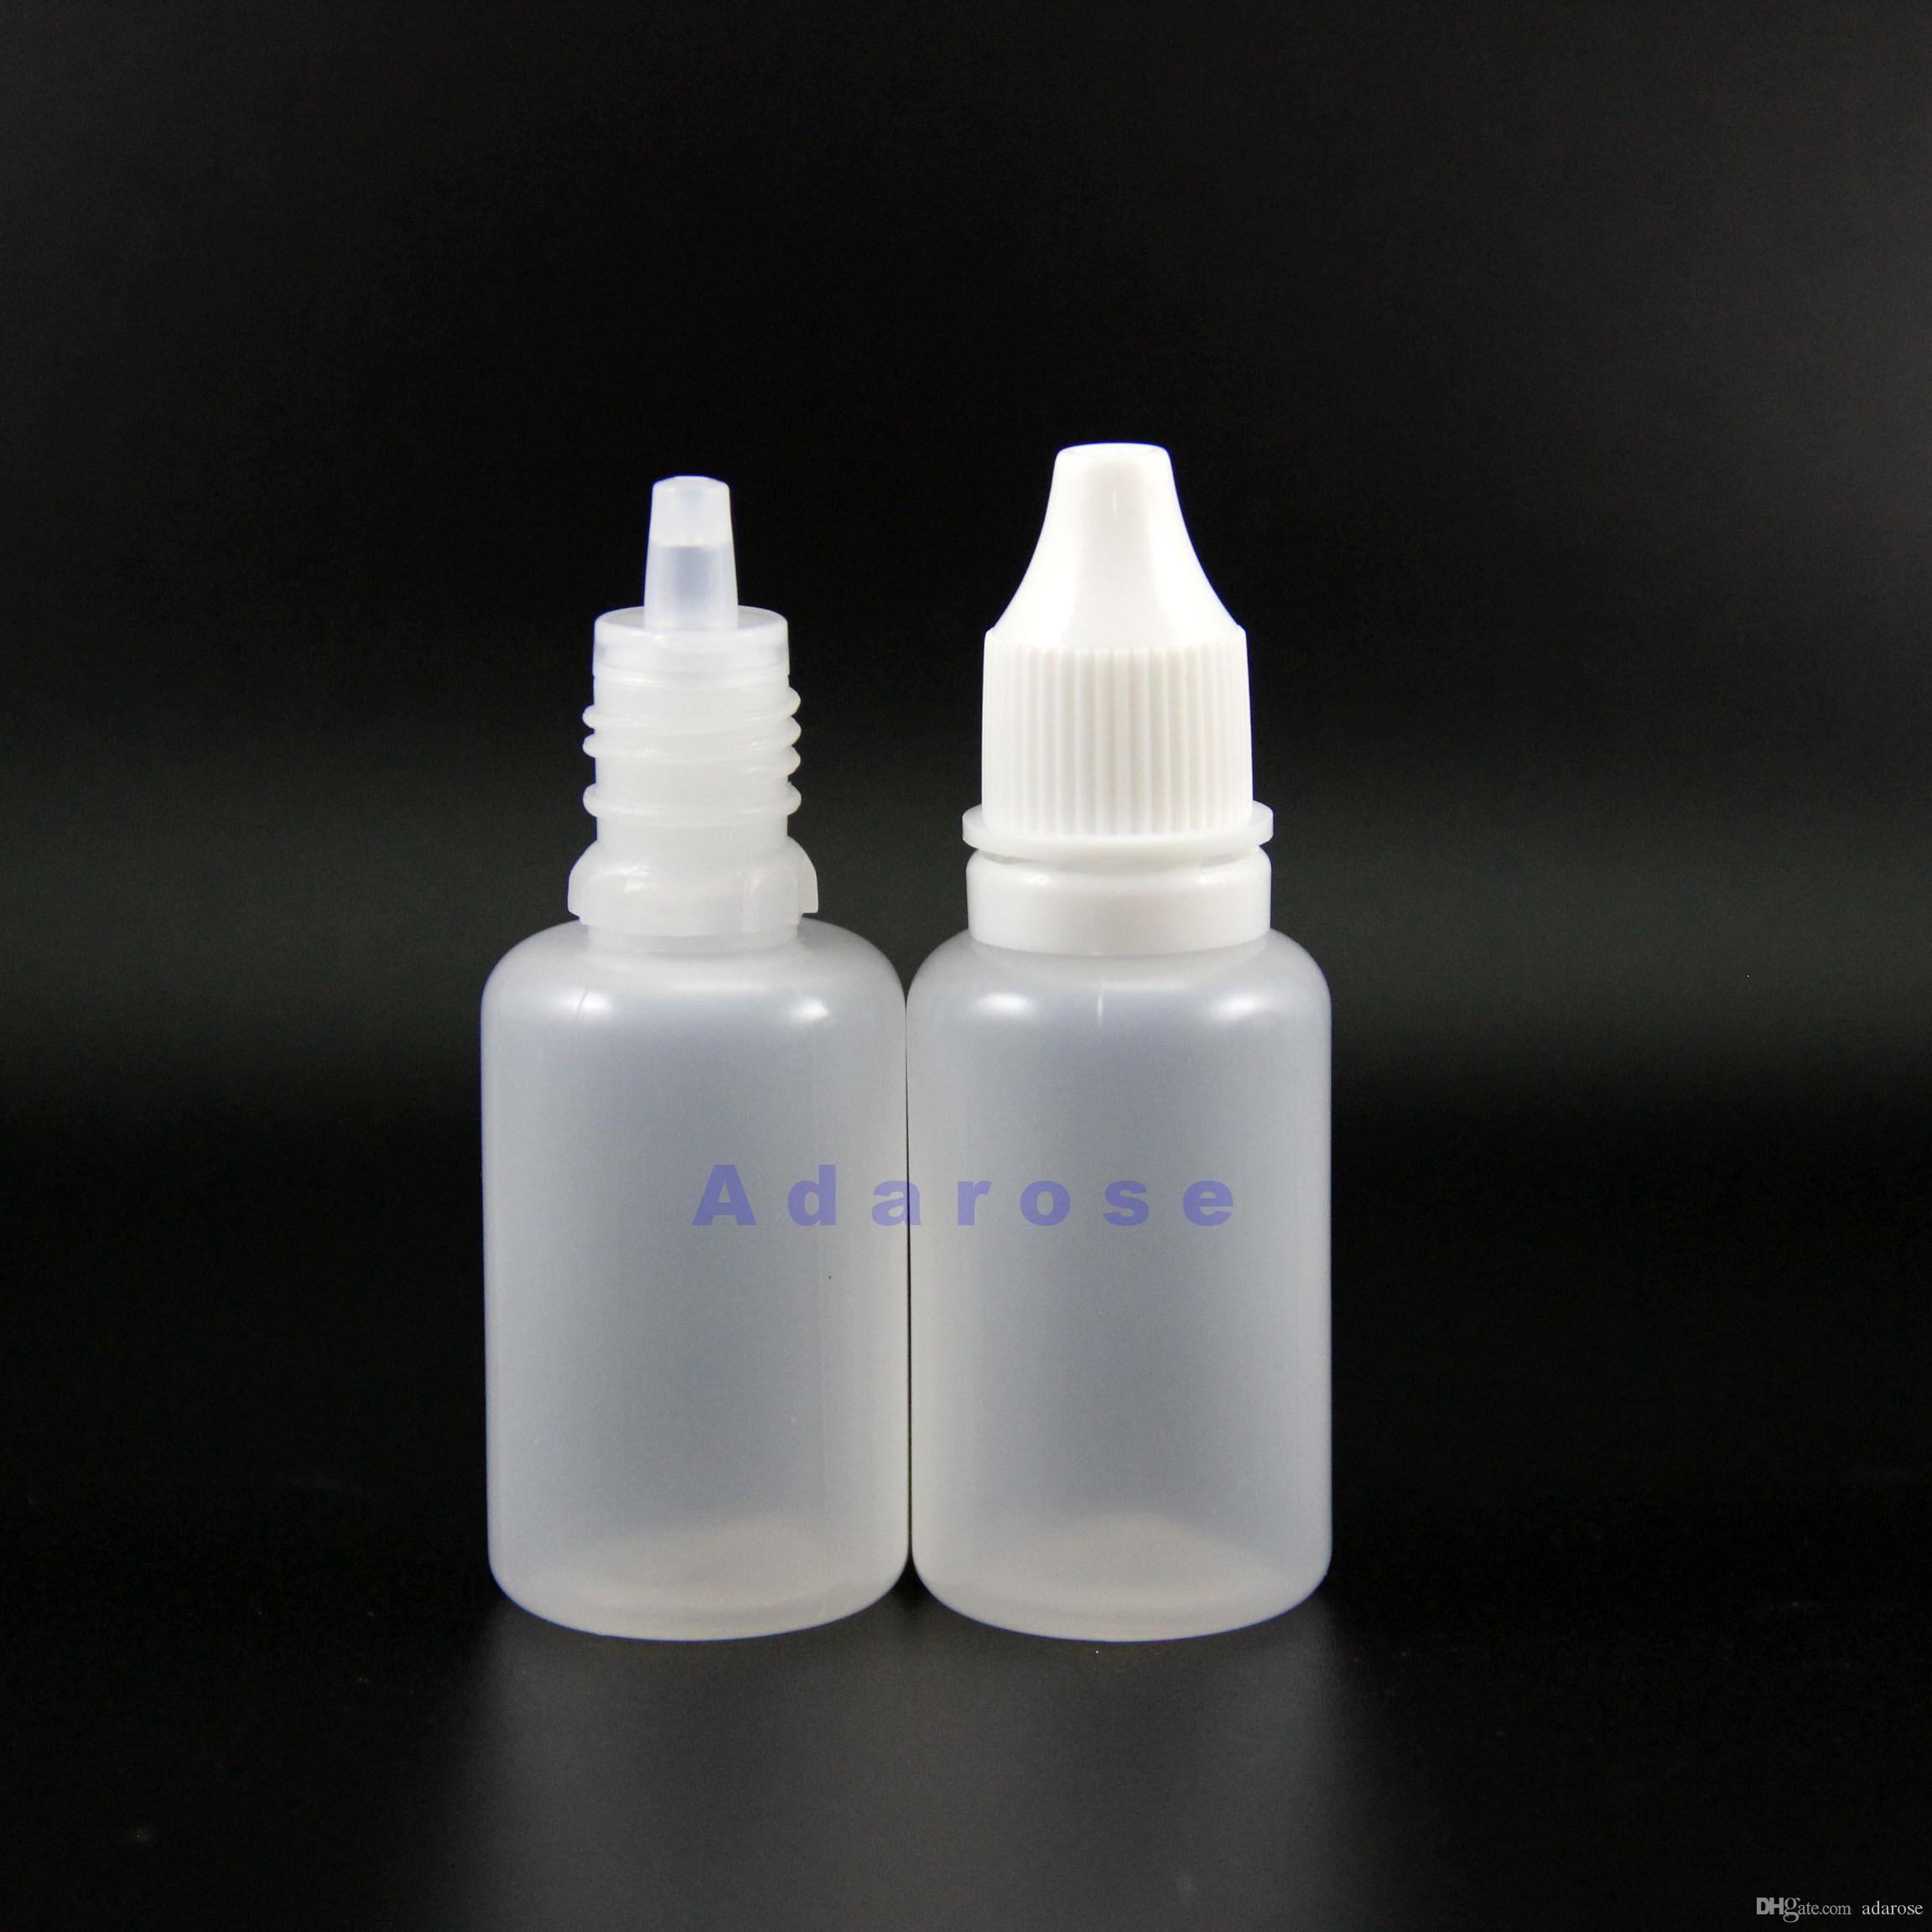 100 Pcs 20 ML High Quality LDPE Plastic Dropper Bottles Tamper Proof Thief Safe Caps & Tips Vapor Vape with thick nipple